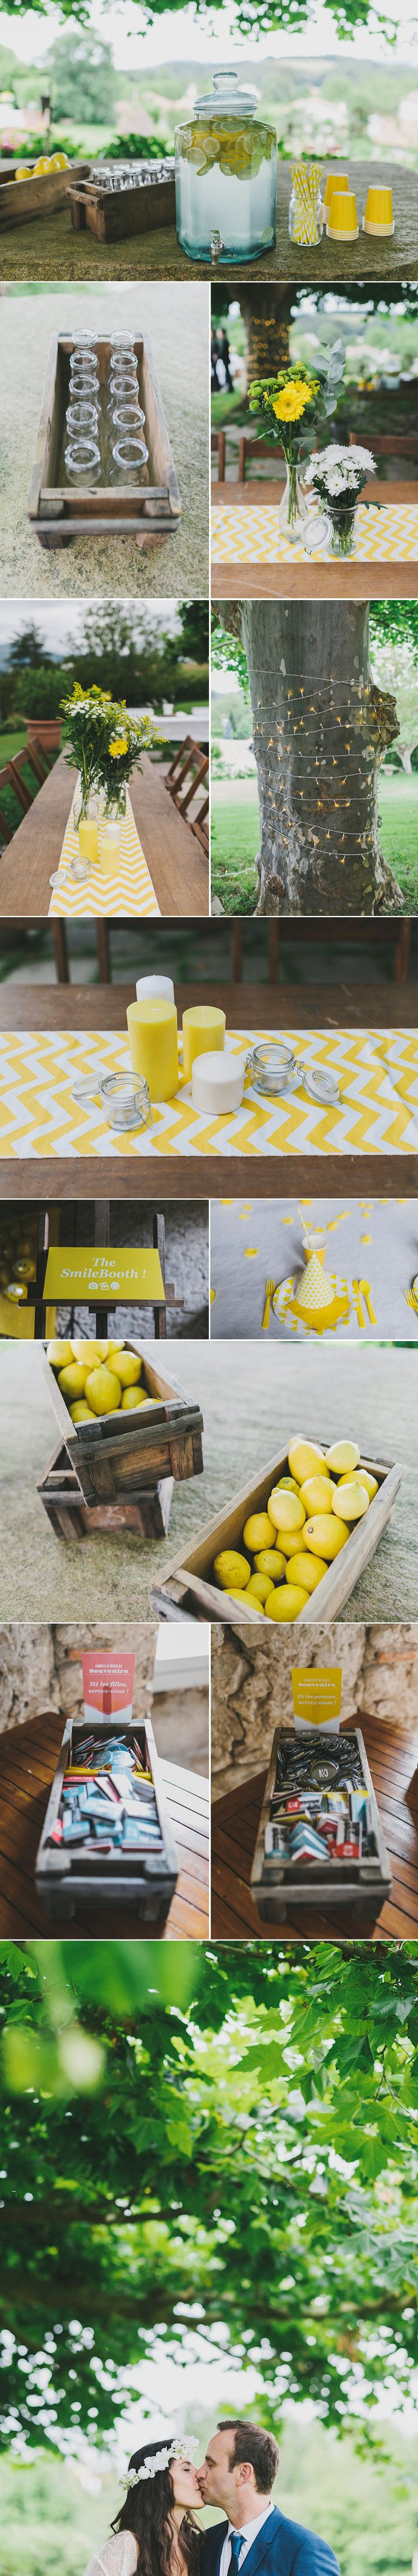 ©Pretty Days - Mariage - Pays Basque - Le blog de Madame c #6 Bar à limonade, citronnade